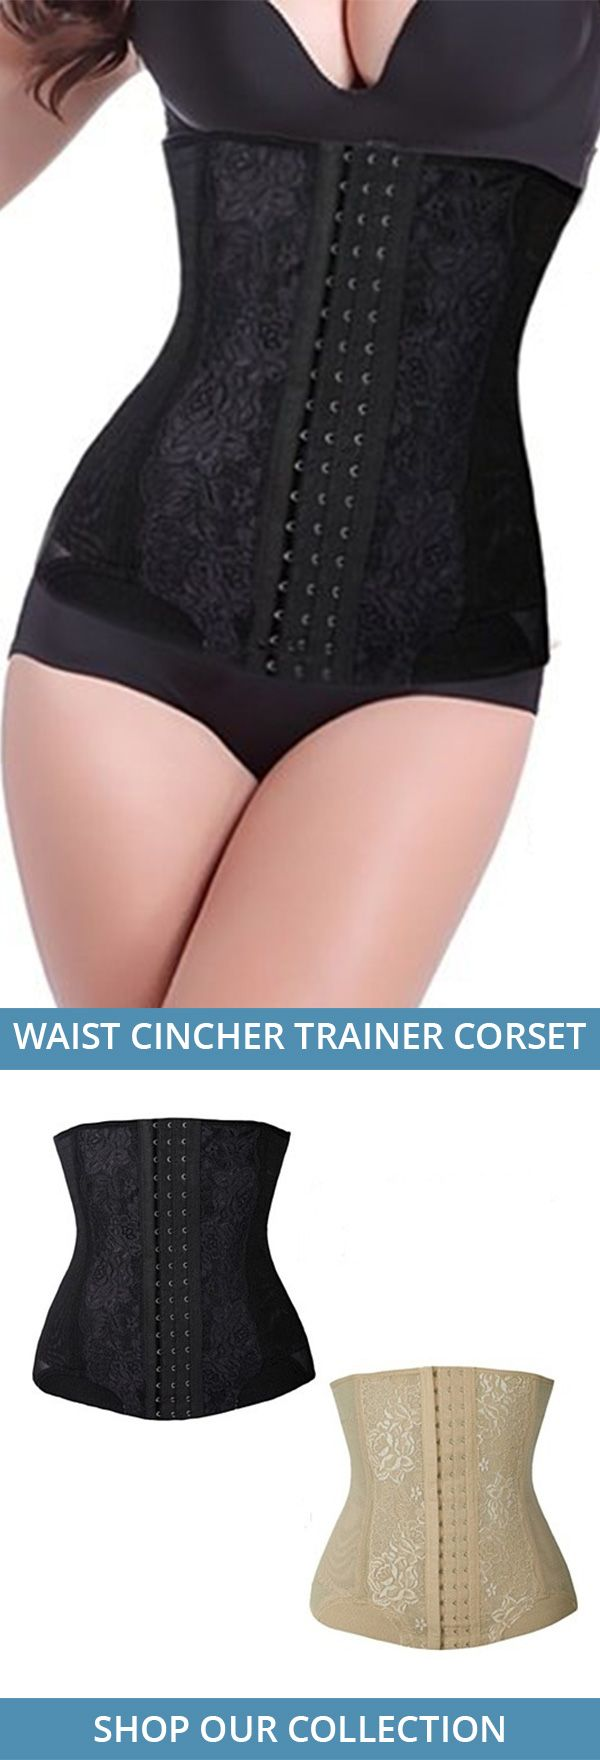 The Waist Cincher Corset has been used for years as a tool to help women create the perfect hourglass shape.  These days, they are worn and promoted regularly by celebrities and models.  By wearing this, you will visibly reduce the size of your waist.